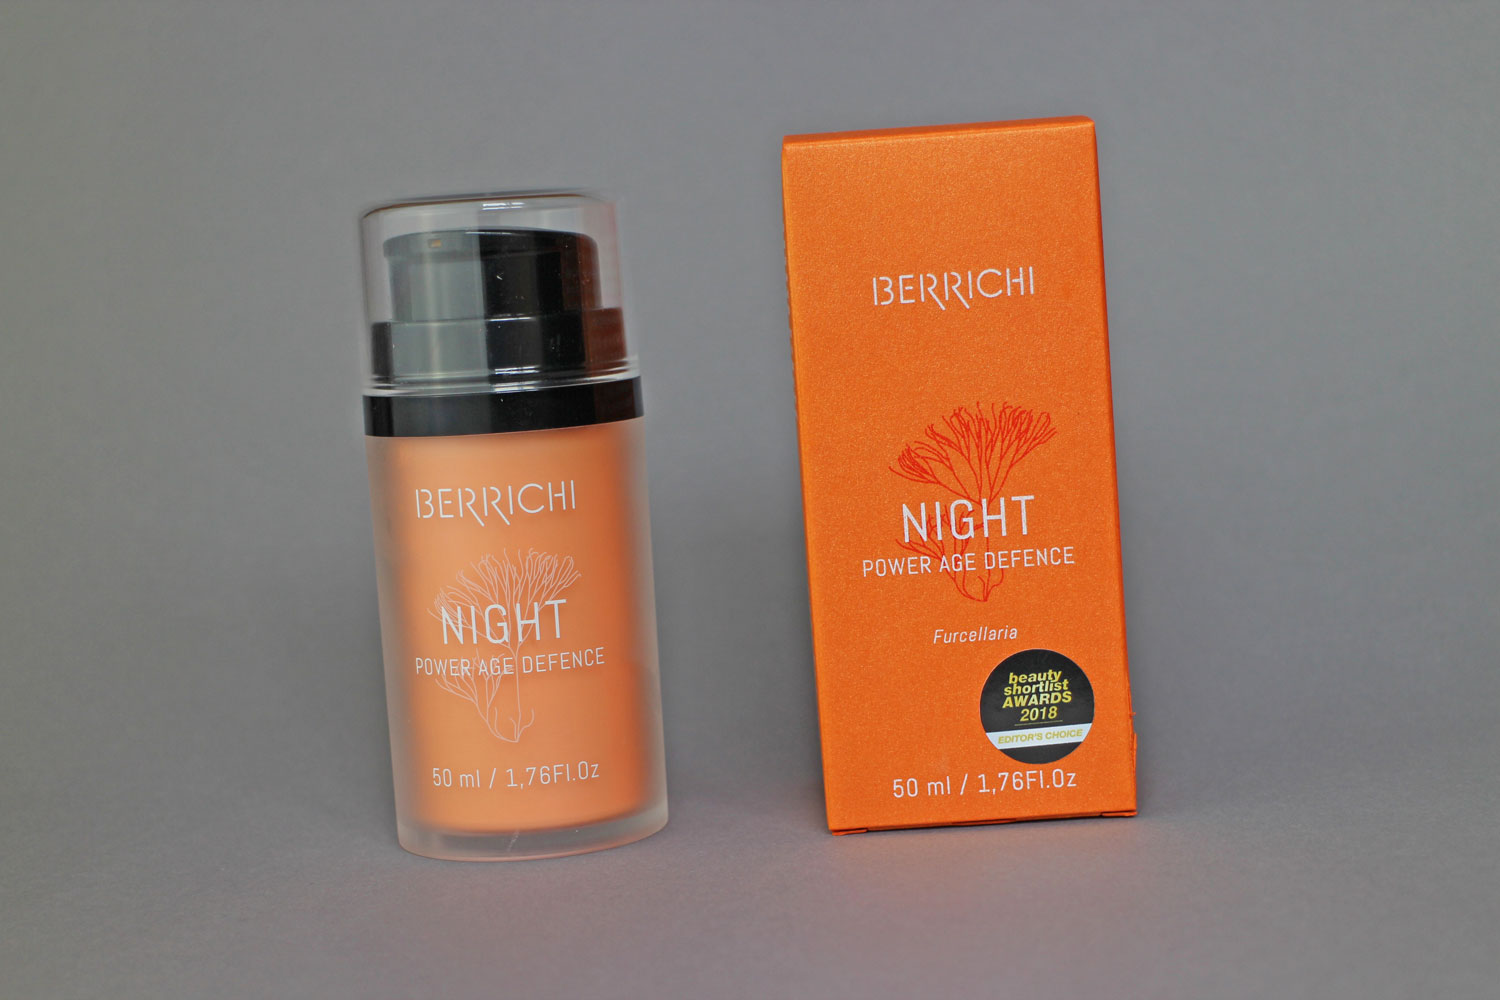 Berrichi Night Powder Age Defence